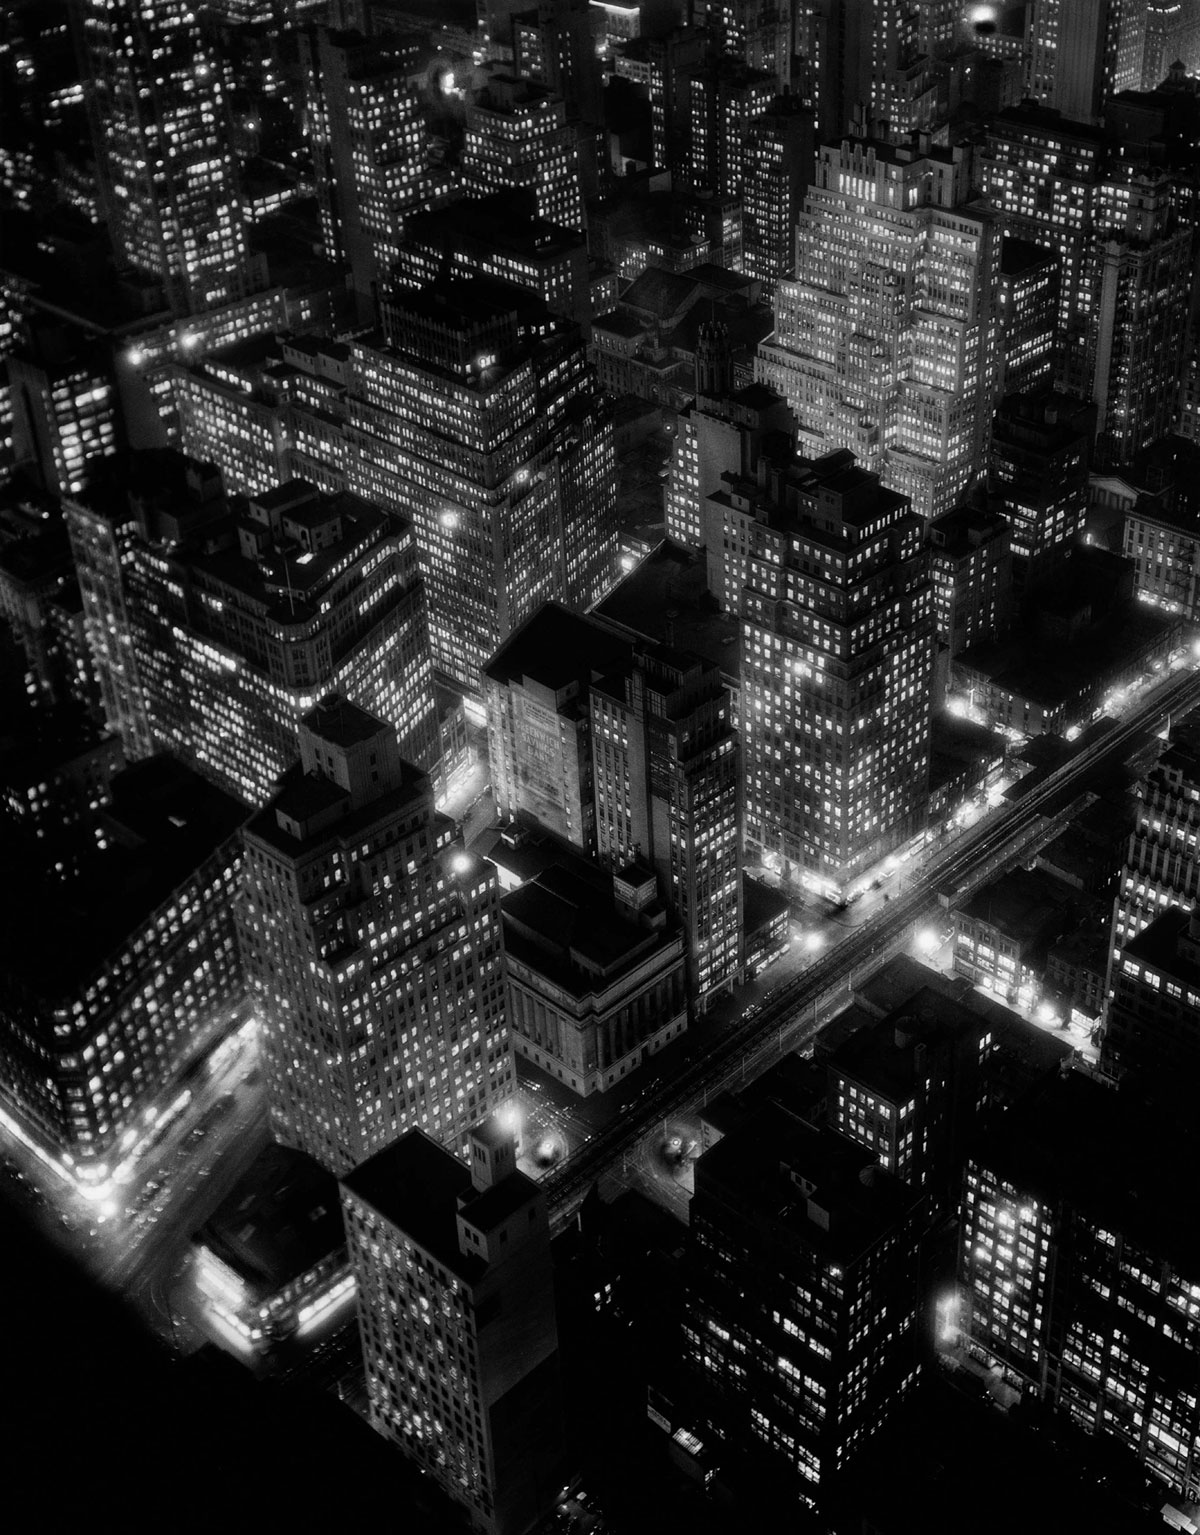 Nightview, New York City (1932) by Berenice Abbott.